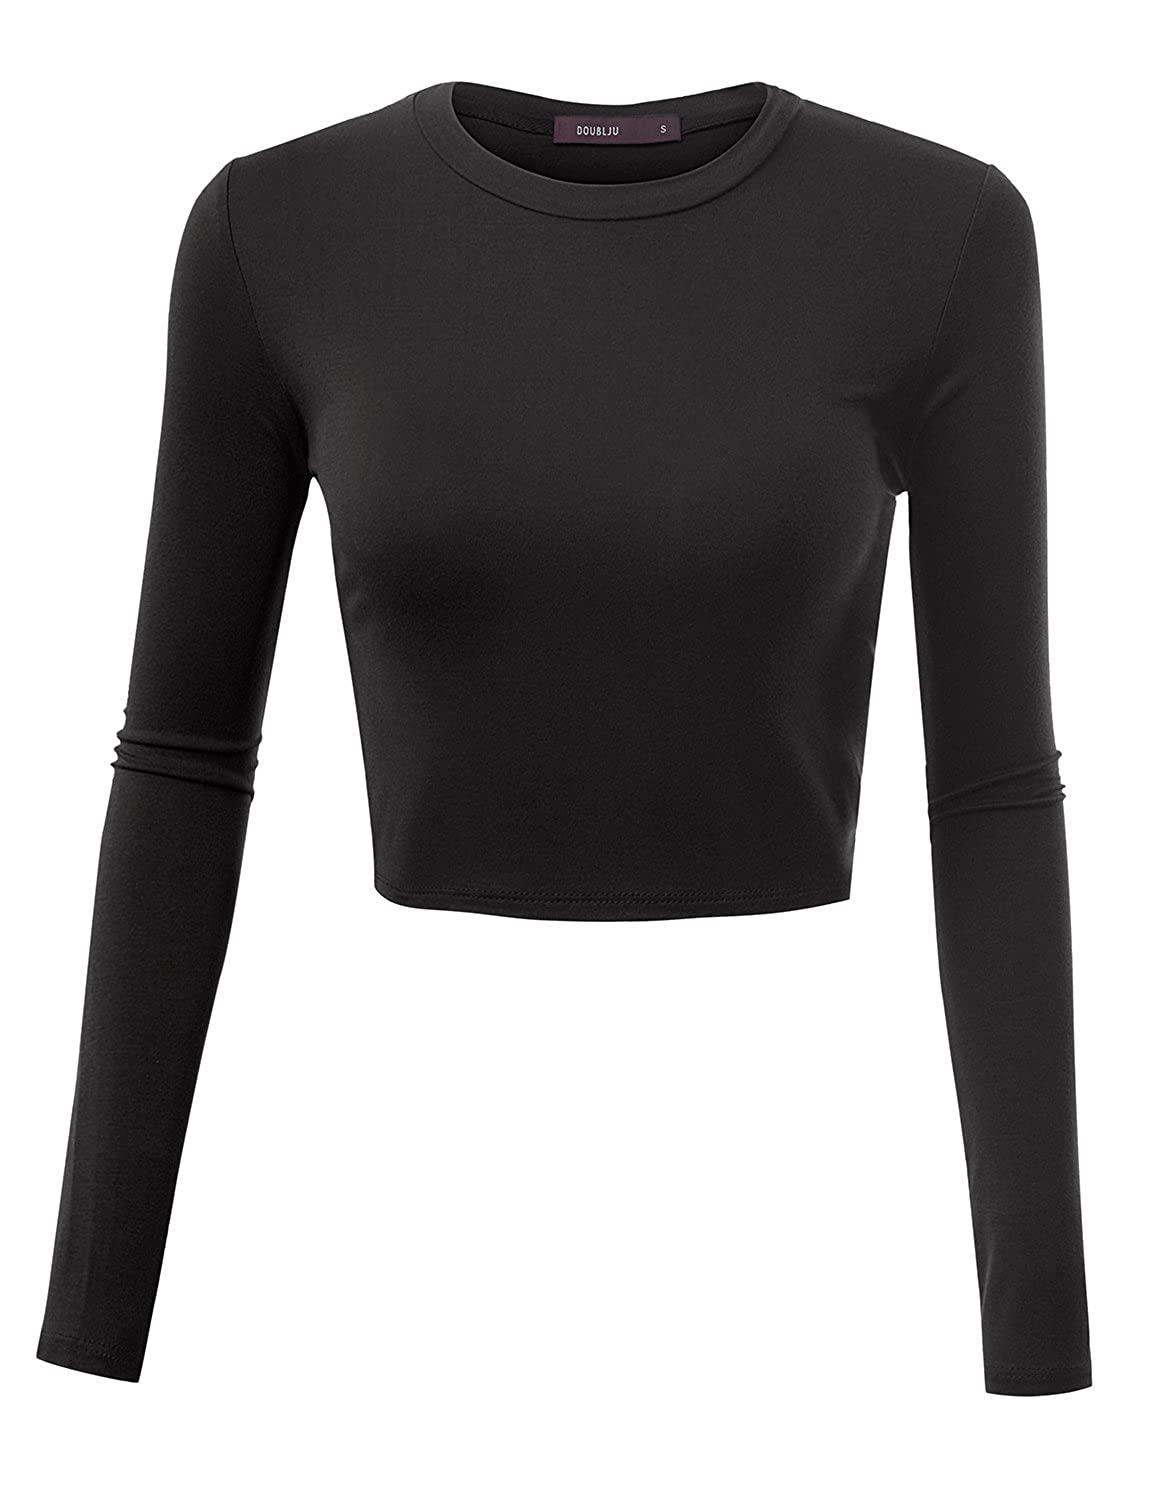 0d490b32baf90 Doublju Basic Long Sleeve Crop Top for Women with Plus Size at Amazon  Women s Clothing store